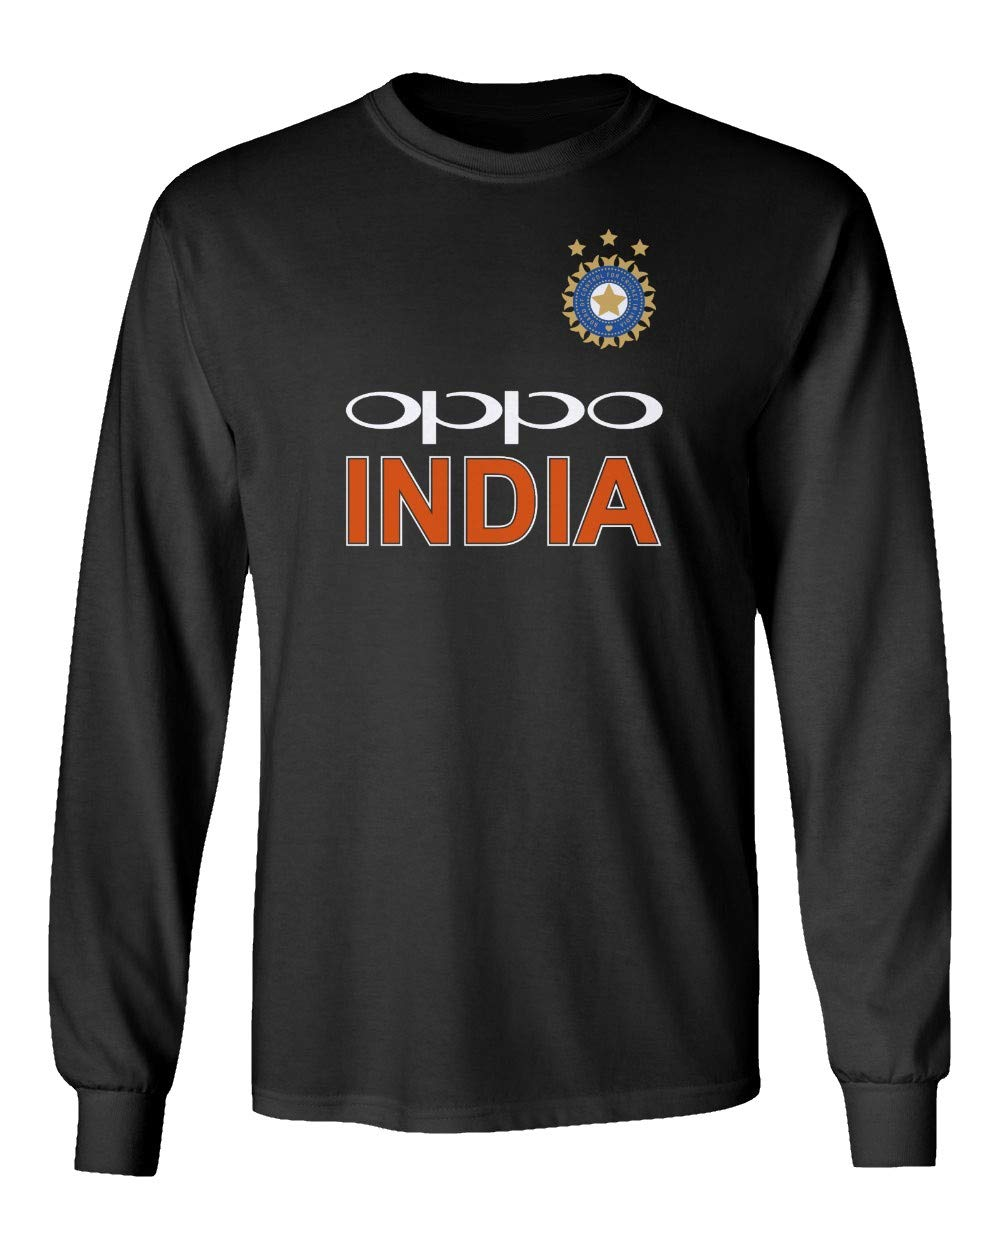 Details about  /Cricket India Jersey Style Cricket New Oppo Fans Supporter Men/'s Tank Top